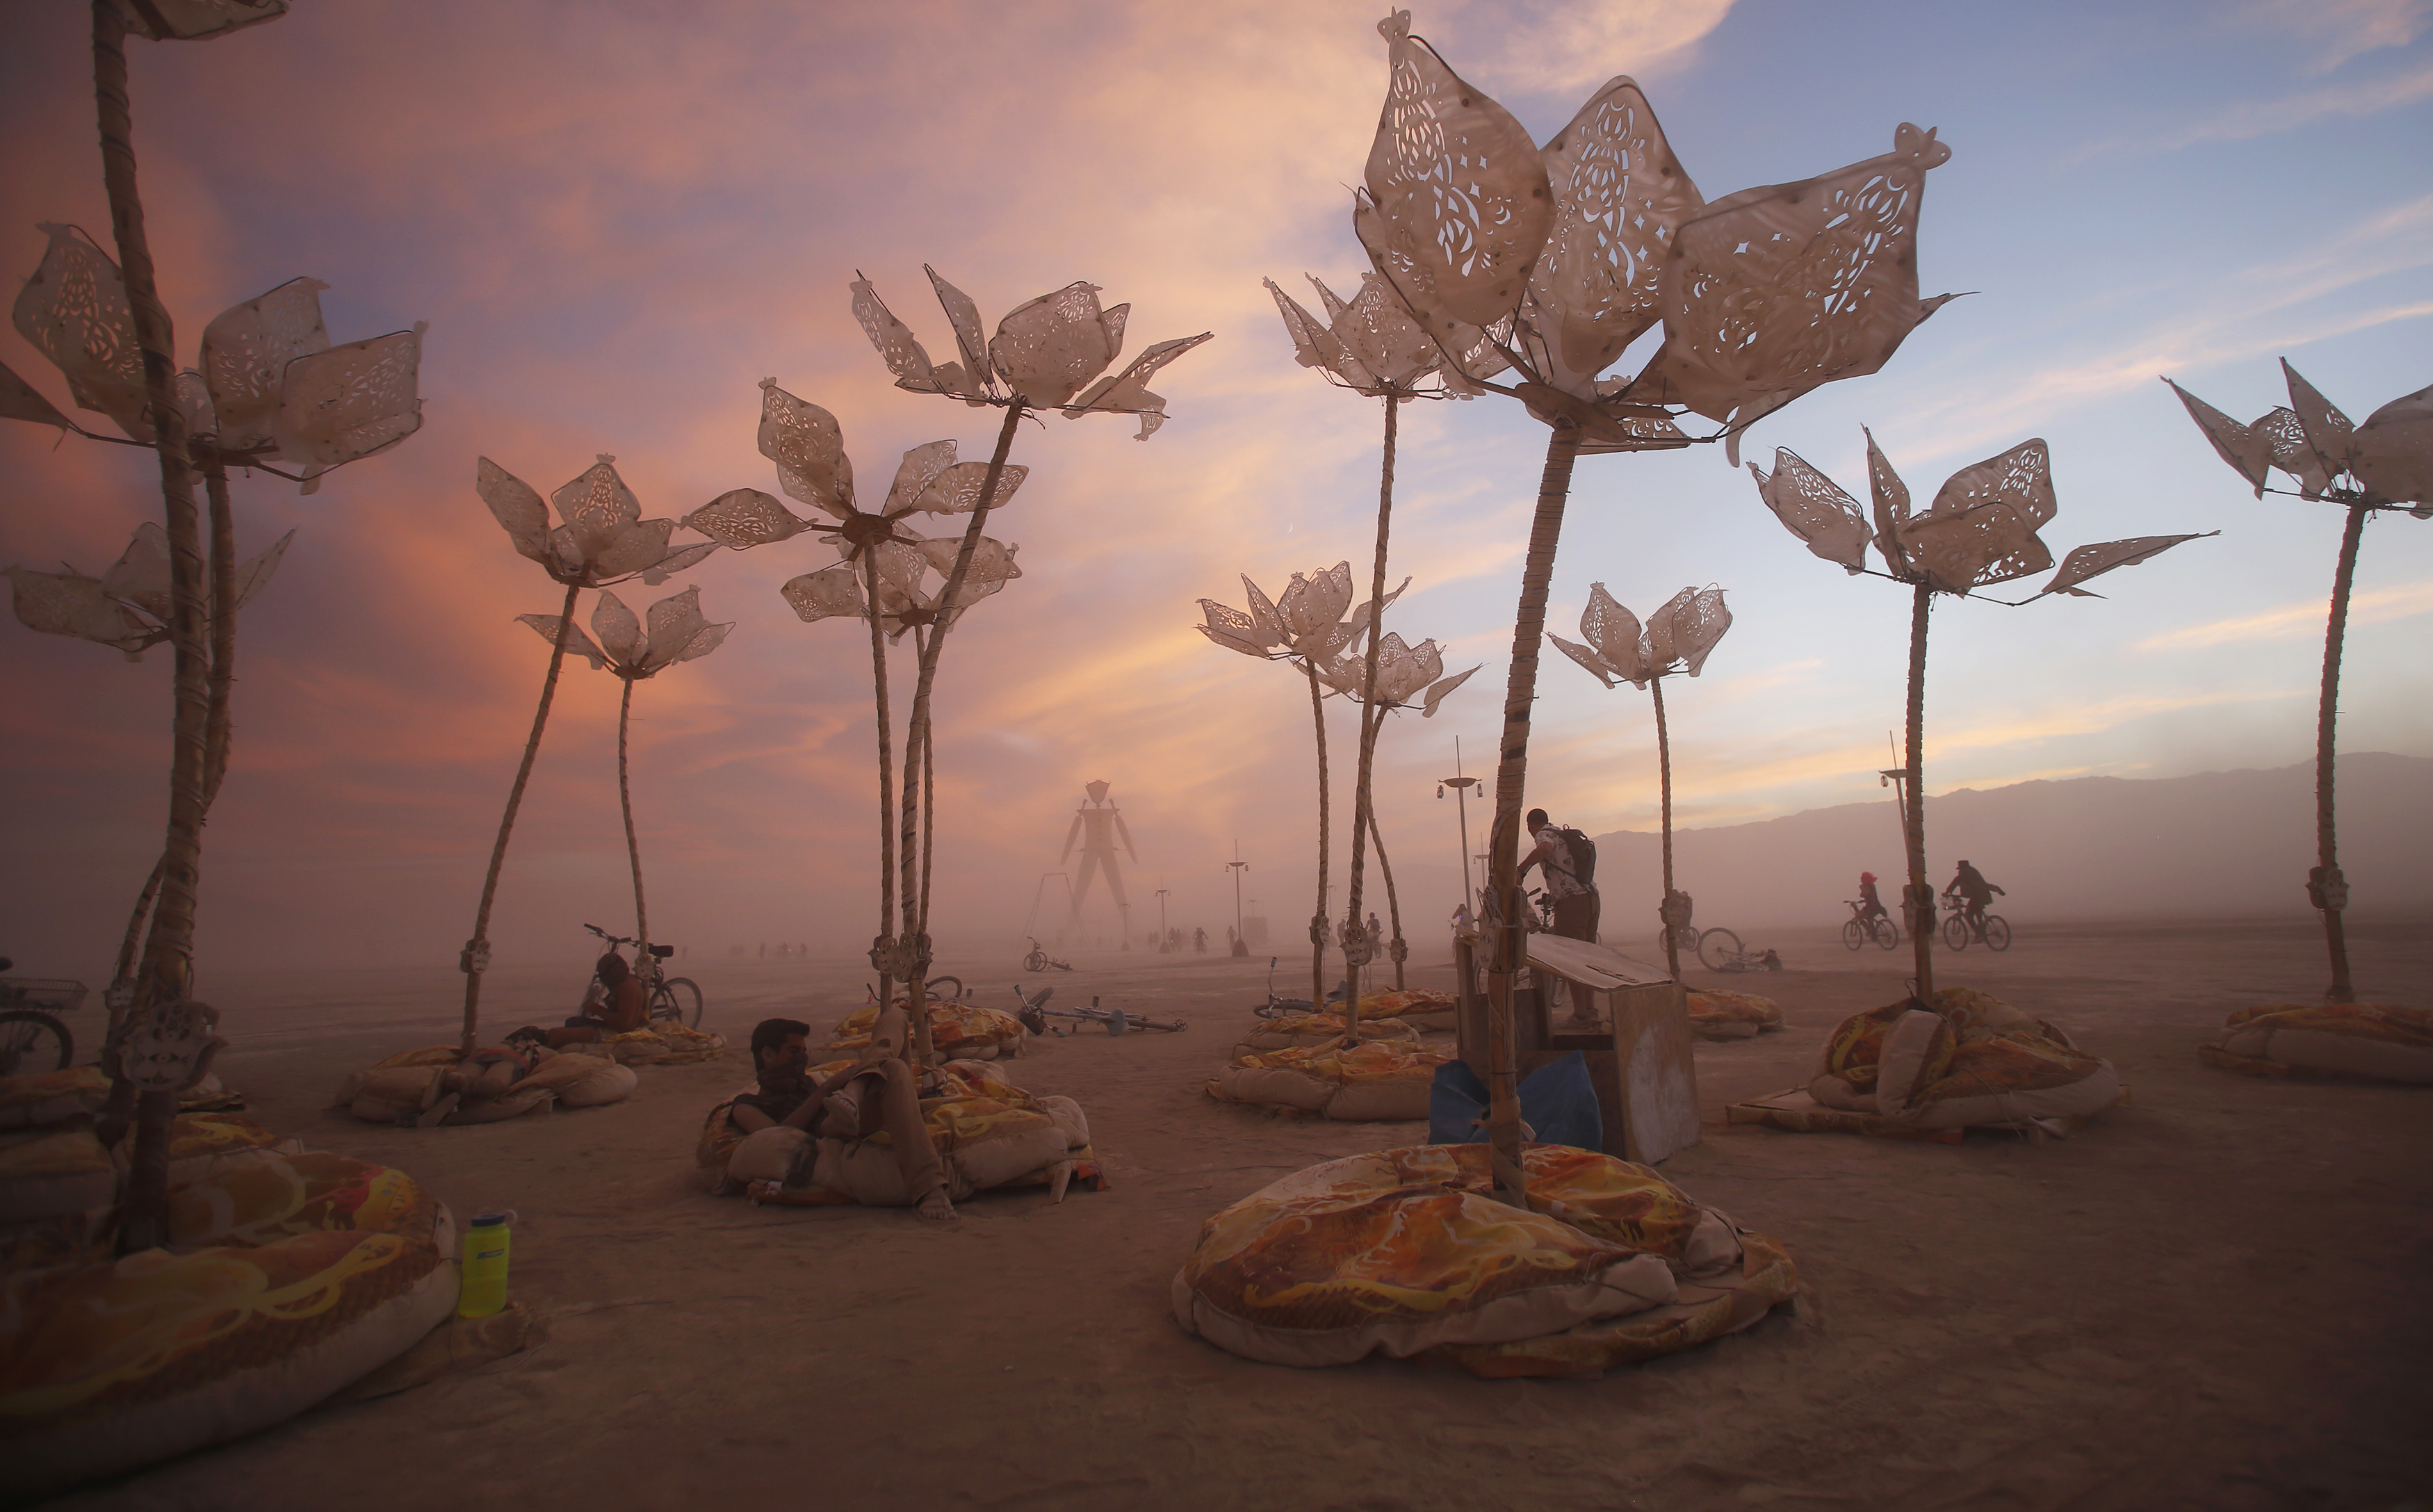 "The art installation Pulse & Bloom is seen during the Burning Man 2014 ""Caravansary"" arts and music festival in the Black Rock Desert of Nevada, August 29, 2014. Over 65,000 people from all over the world have gathered at the sold out festival to spend a week in the remote desert cut off from much of the outside world to experience art, music and the unique community that develops. Picture taken August 29, 2014. REUTERS/Jim Urquhart (UNITED STATES - Tags: SOCIETY TPX IMAGES OF THE DAY)  FOR USE WITH BURNING MAN RELATED REPORTING ONLY. FOR EDITORIAL USE ONLY. NOT FOR SALE FOR MARKETING OR ADVERTISING CAMPAIGNS. NO THIRD PARTY SALES. NOT FOR USE BY REUTERS THIRD PARTY DISTRIBUTORS - RTR44CLY"